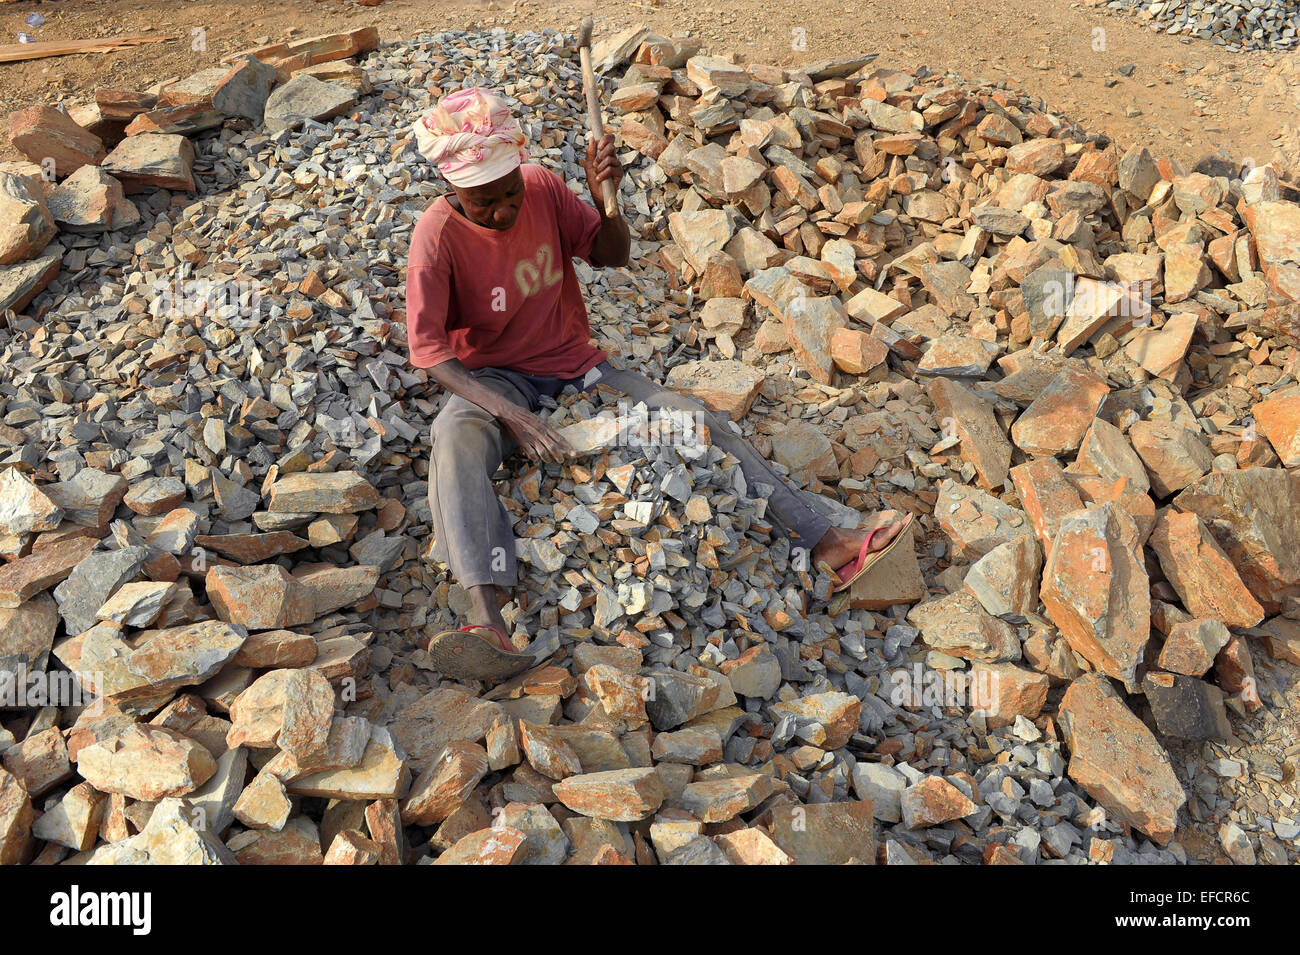 A woman at work breaking rocks into gravel in a quarry near Accra, Ghana, West Africa. - Stock Image